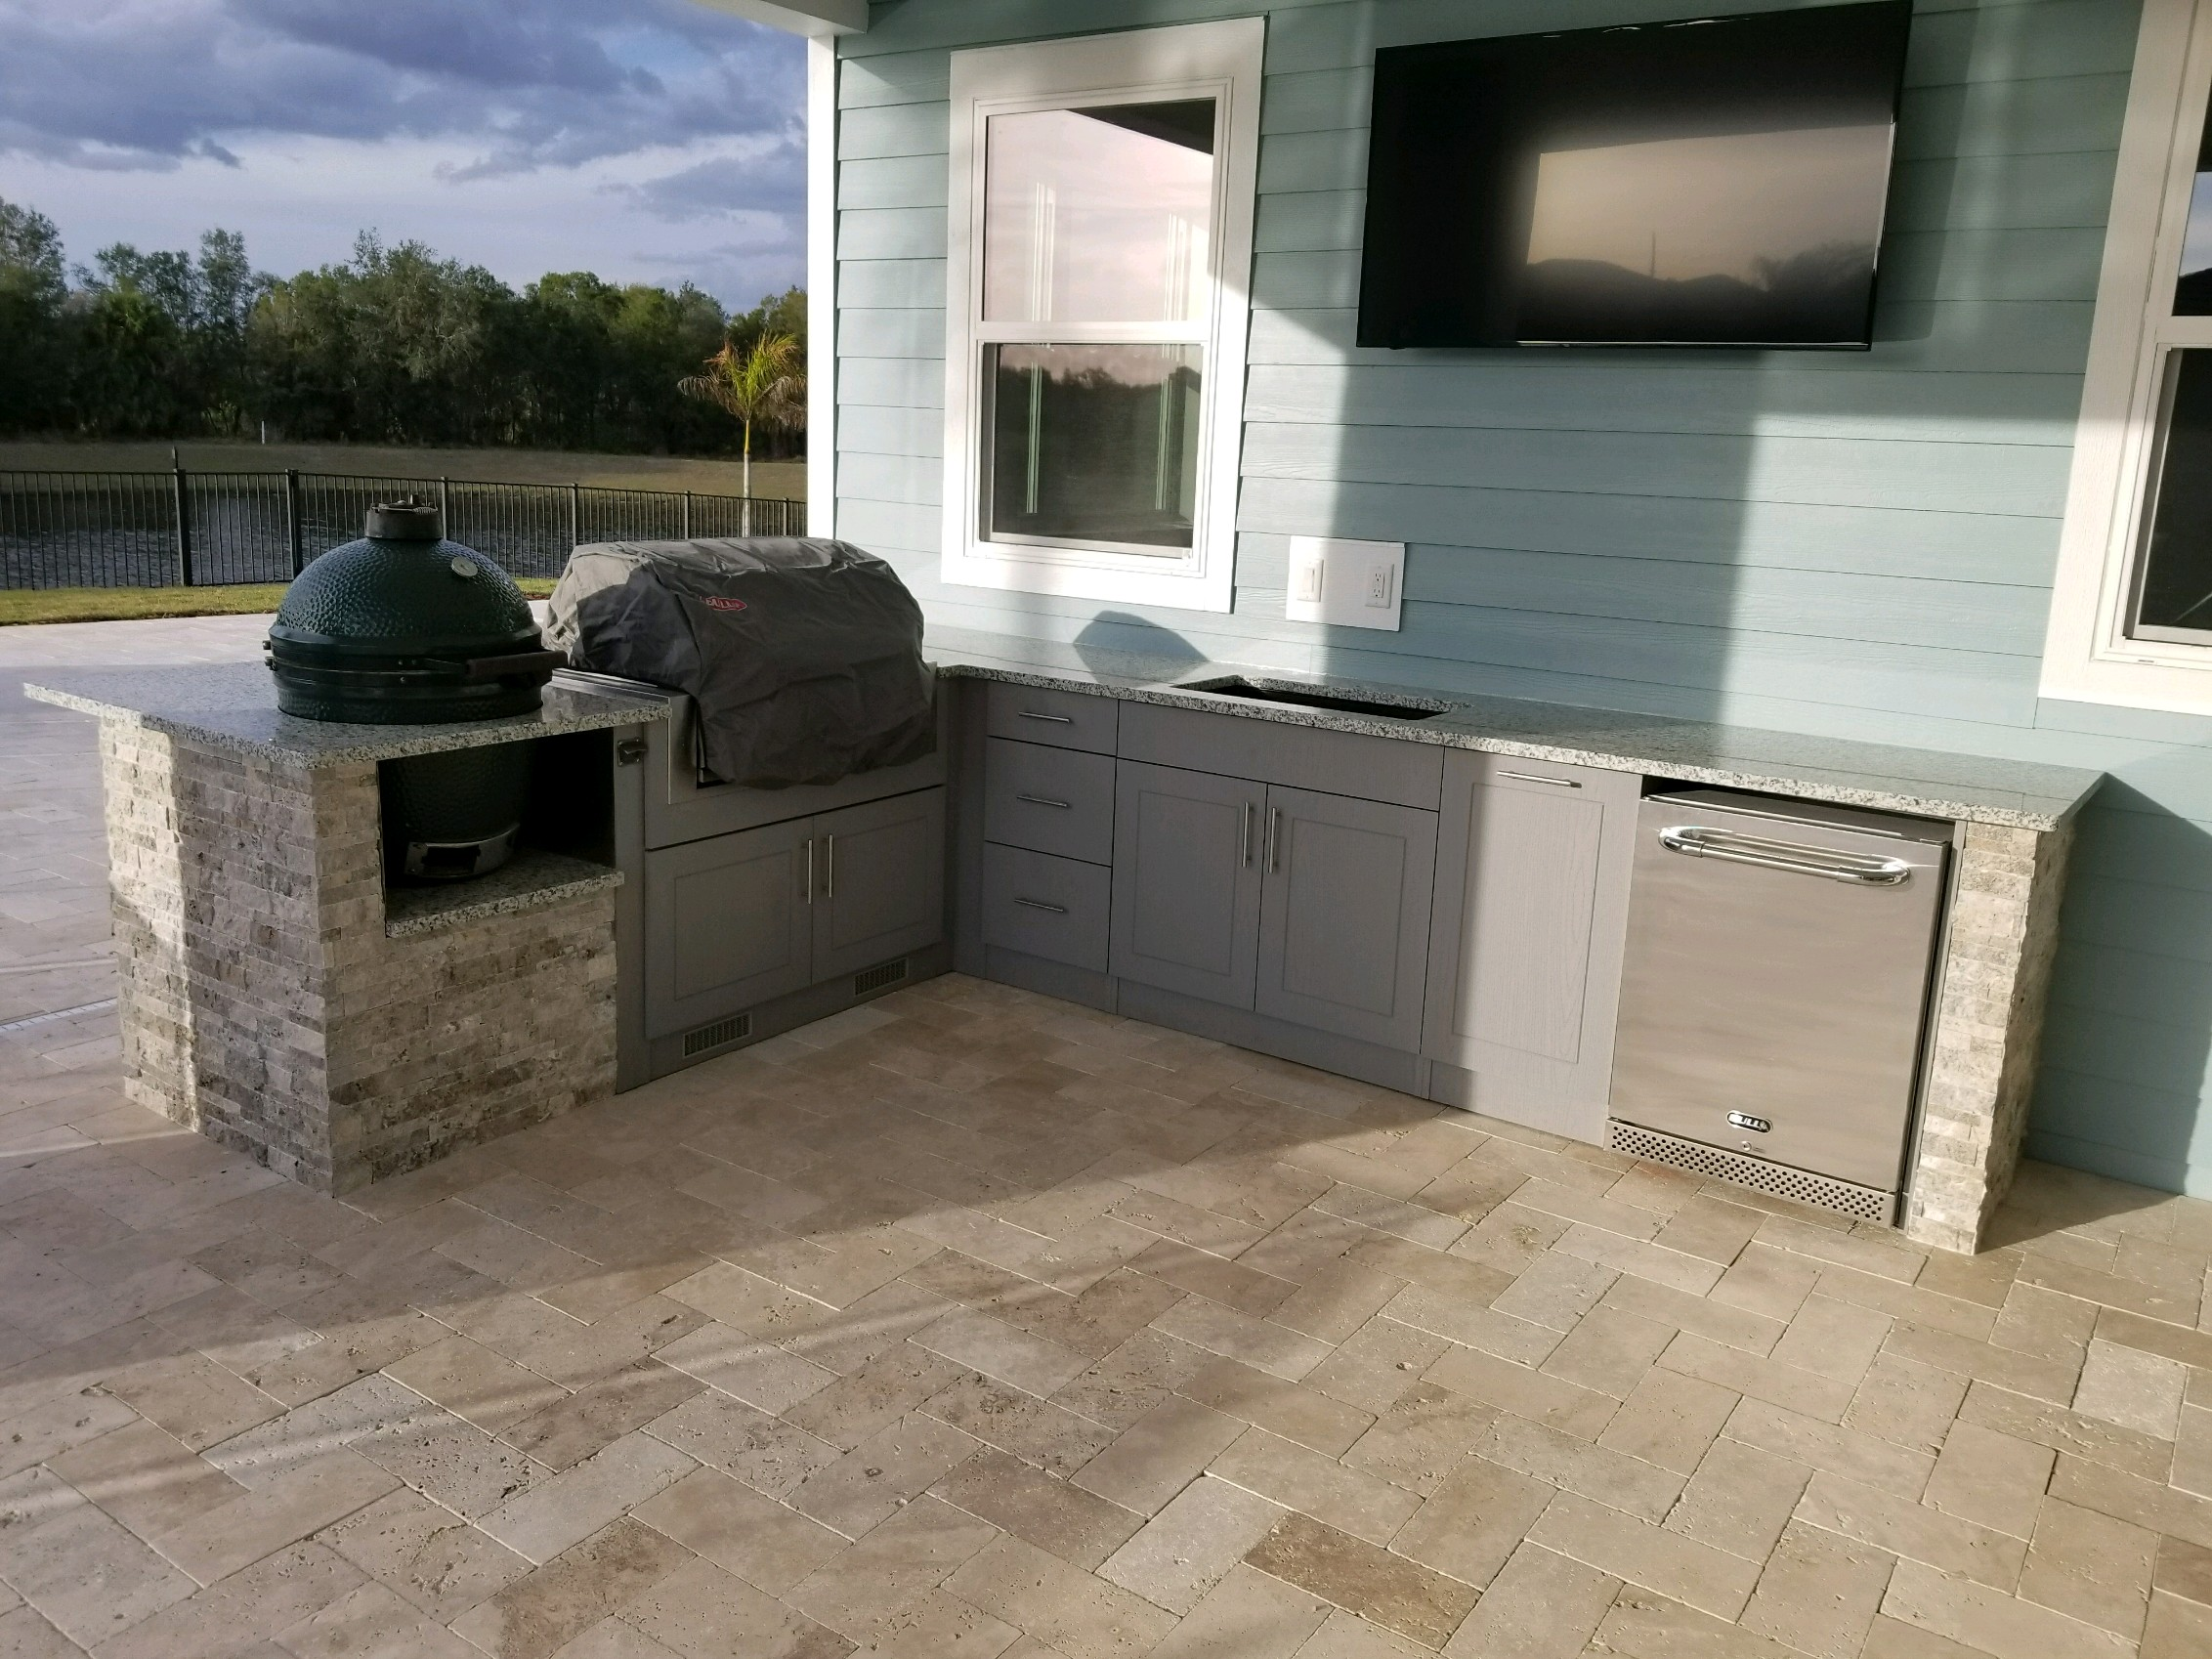 Need an Outdoor Granite Countertop for the Summer? - A&S ...